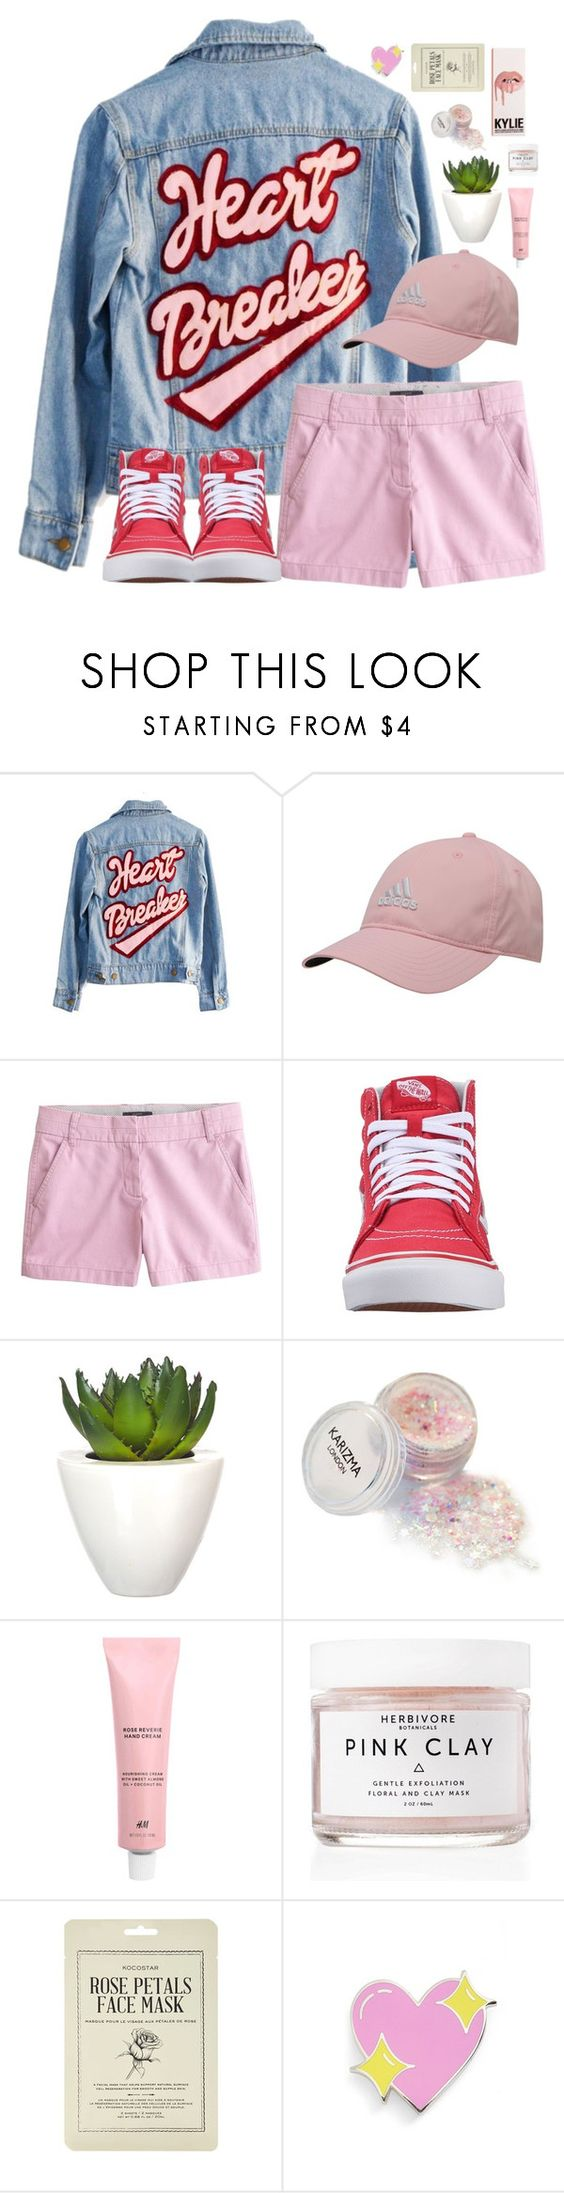 """""""That's me"""" by preppysoutherners ❤ liked on Polyvore featuring High Heels Suicide, adidas, J.Crew, Vans, Pomax, Herbivore, Forever 21 and Big Bud Press"""